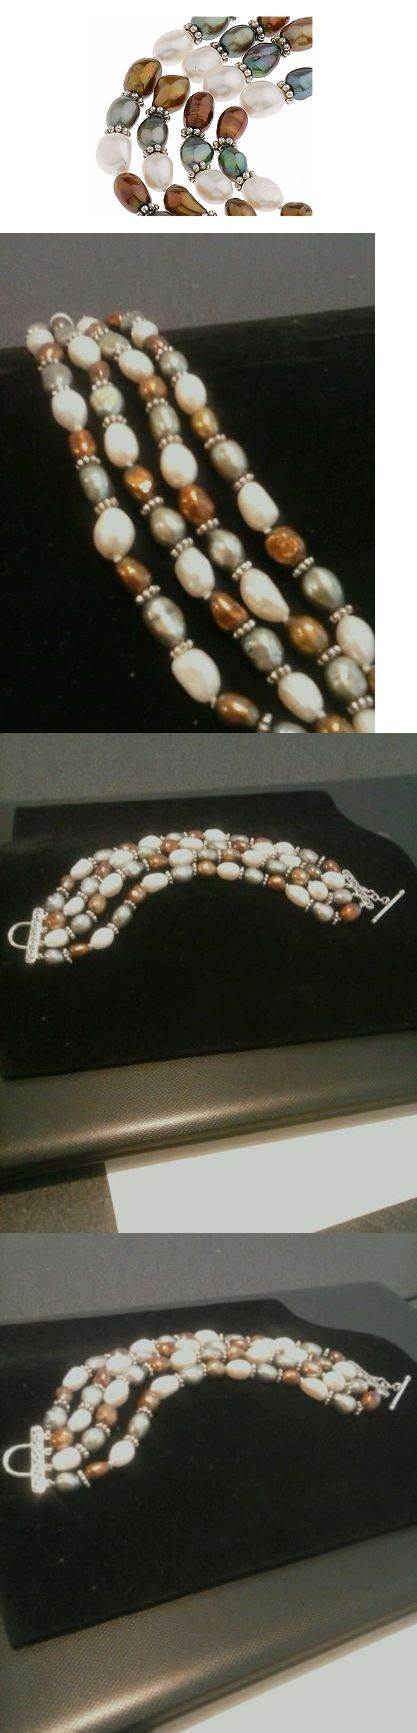 Pearl 164316: Qvc Sterling Artisan 4 Strand Freshwater Multi-Color Pearl Bracelet -> BUY IT NOW ONLY: $36.5 on eBay!